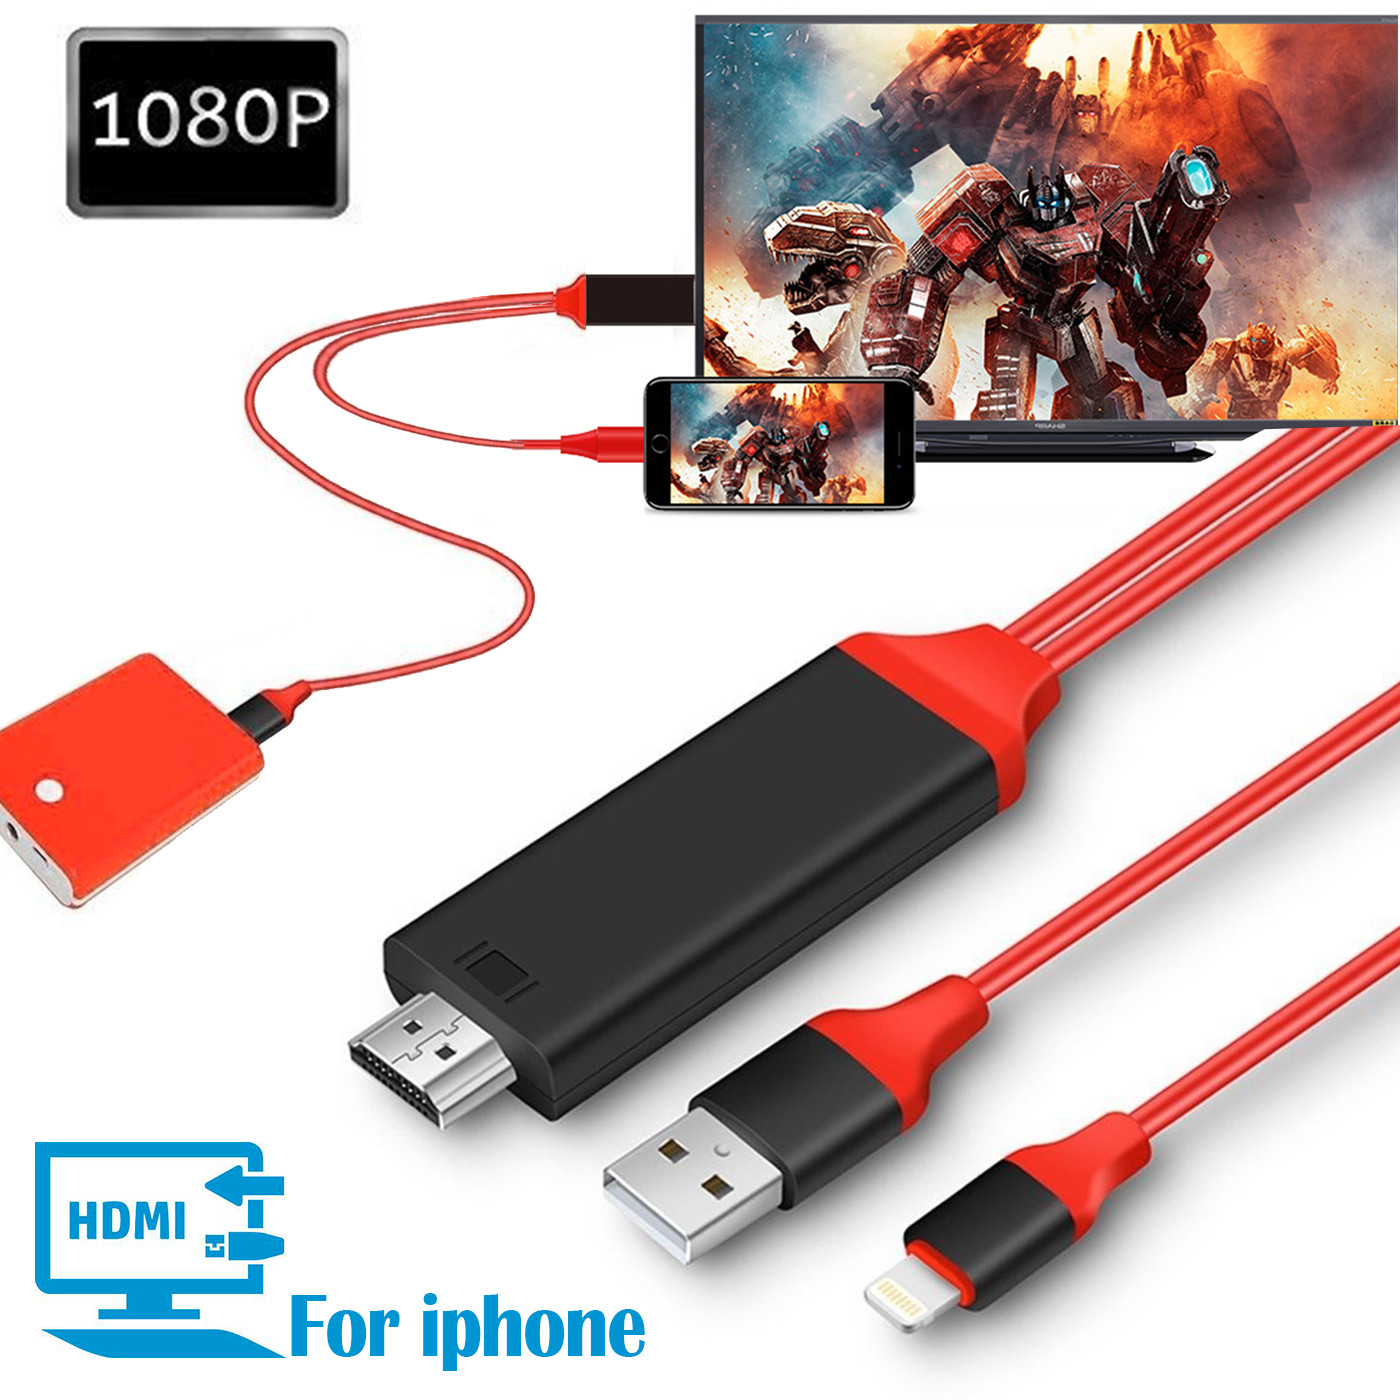 iPhone Lightning to HDMI Adapter, 6.6FT 1080P iphone lightning to HDMI Video AV Cable Connector Conversion HDTV Adapter for iPhone/iPad/iPod